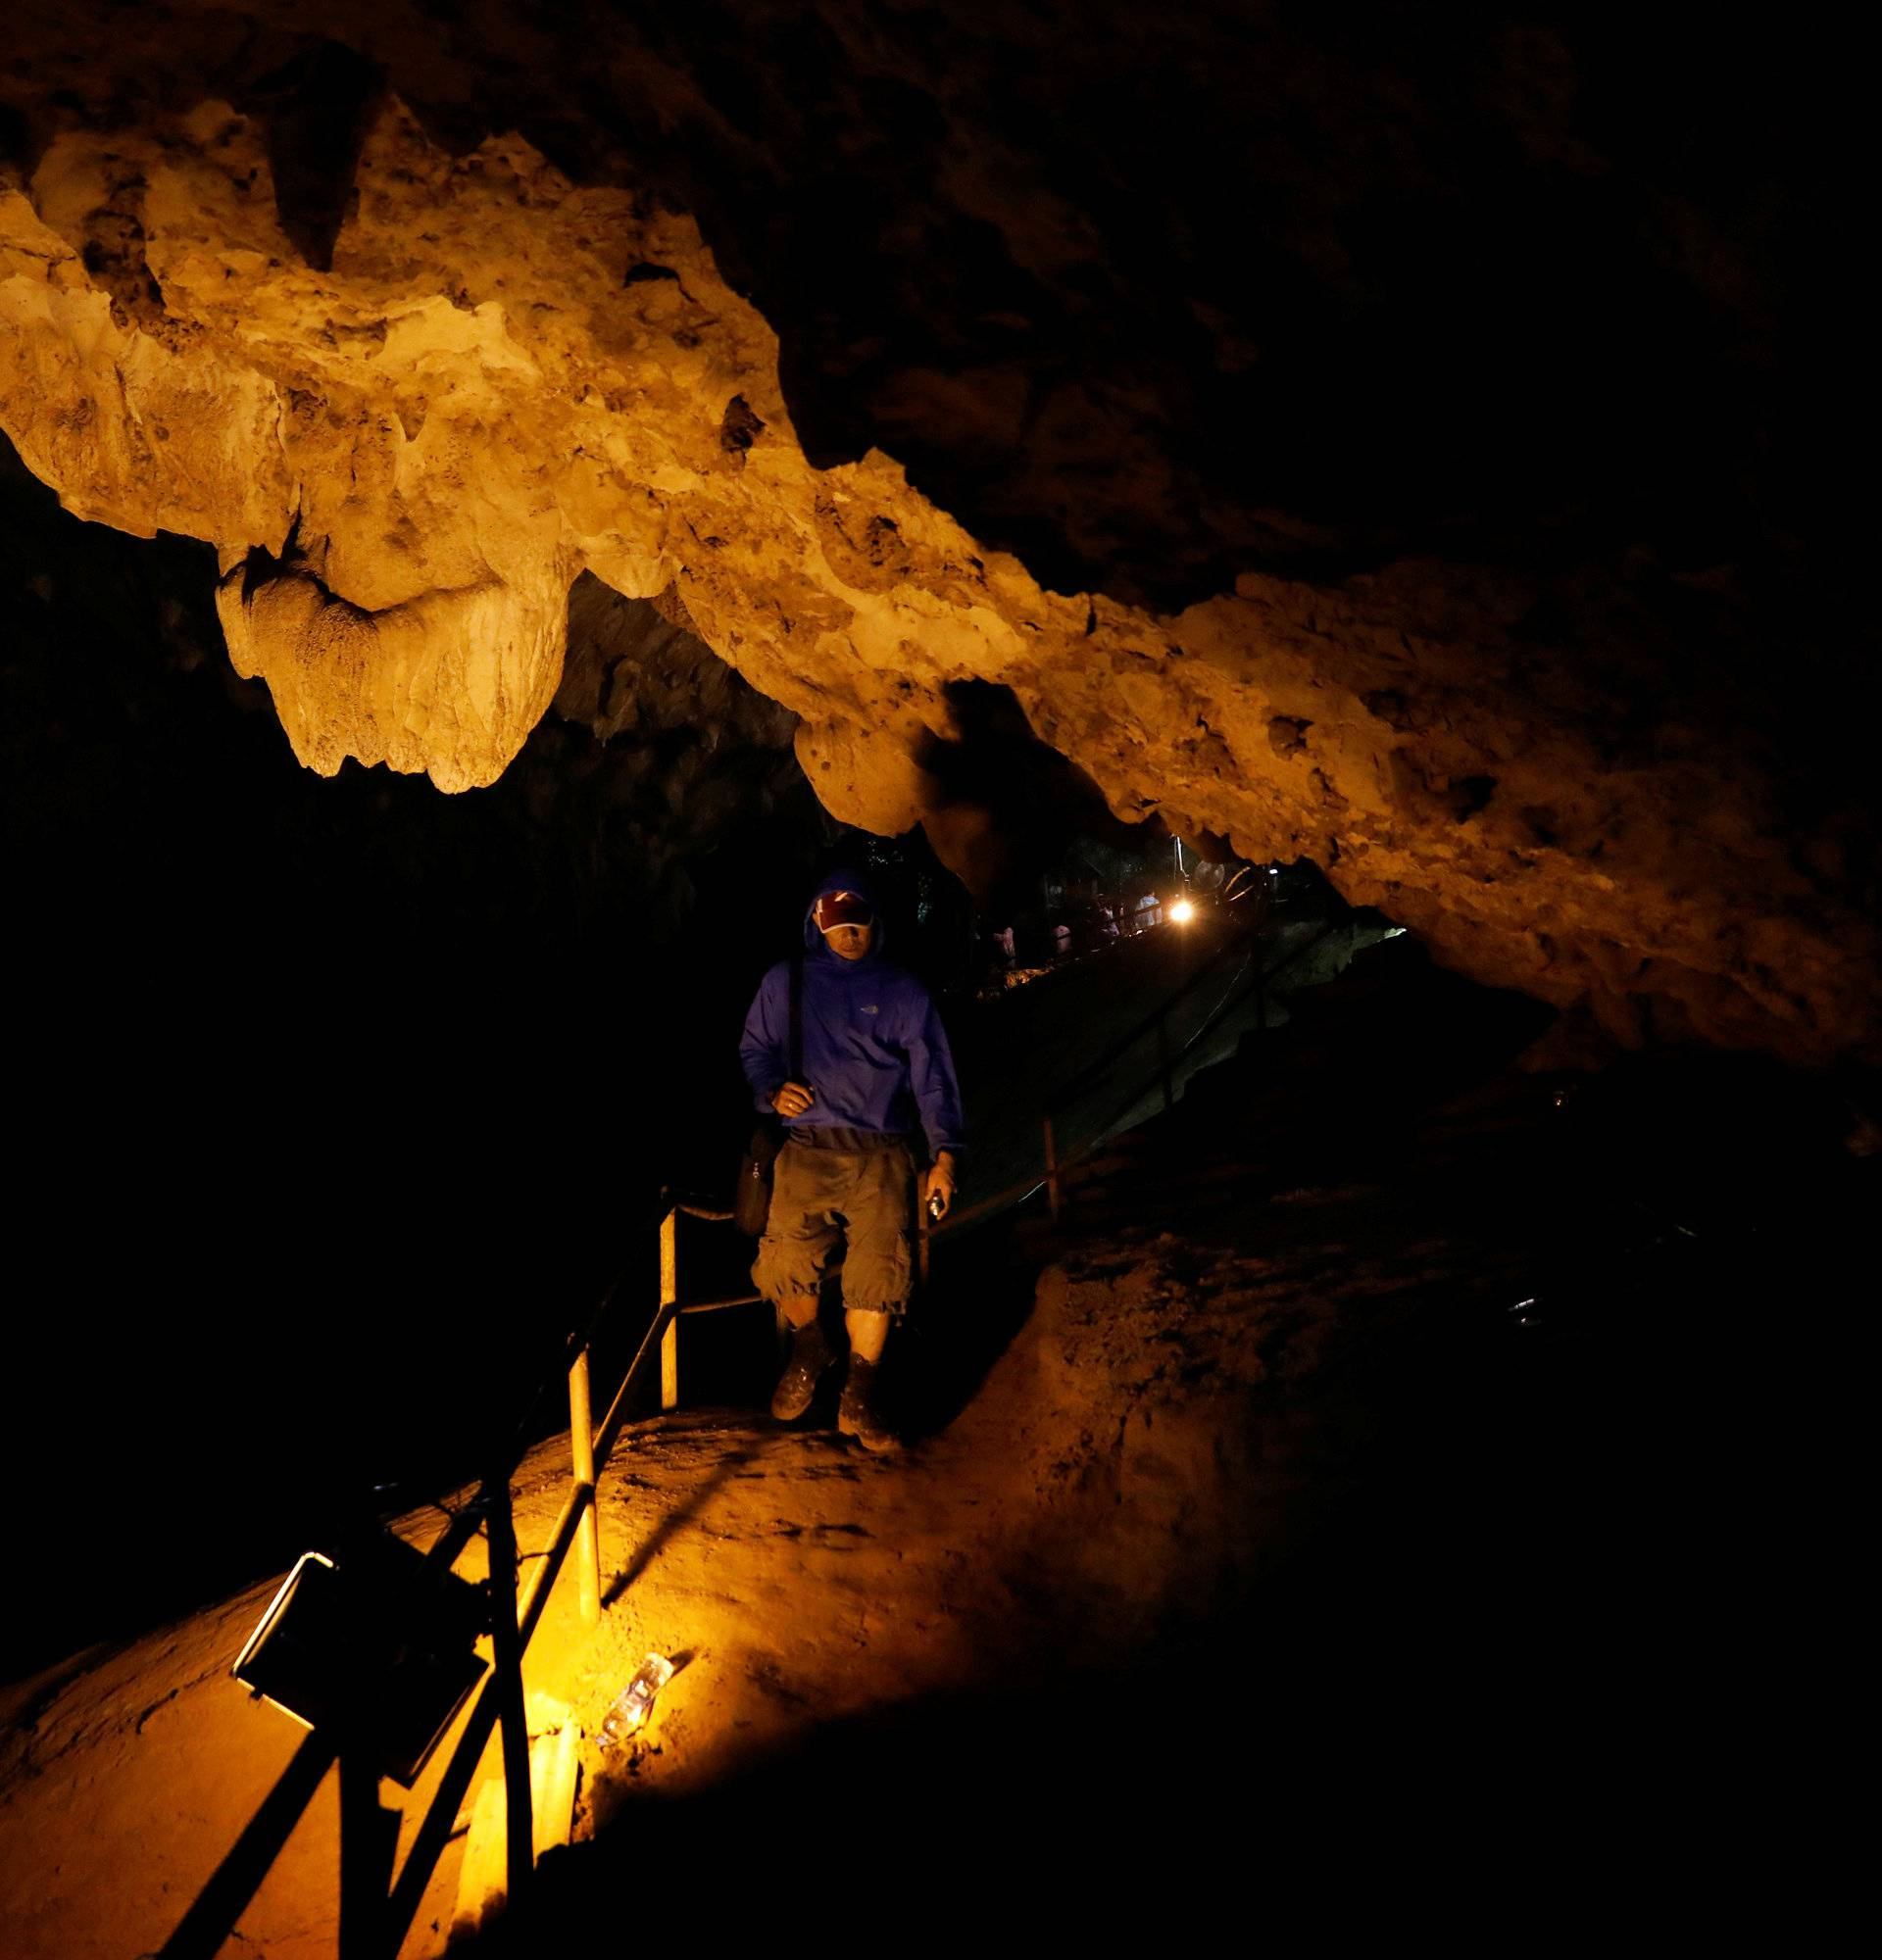 A rescue worker walks in Tham Luang caves during a search for 12 members of an under-16 soccer team and their coach, in the northern province of Chiang Rai